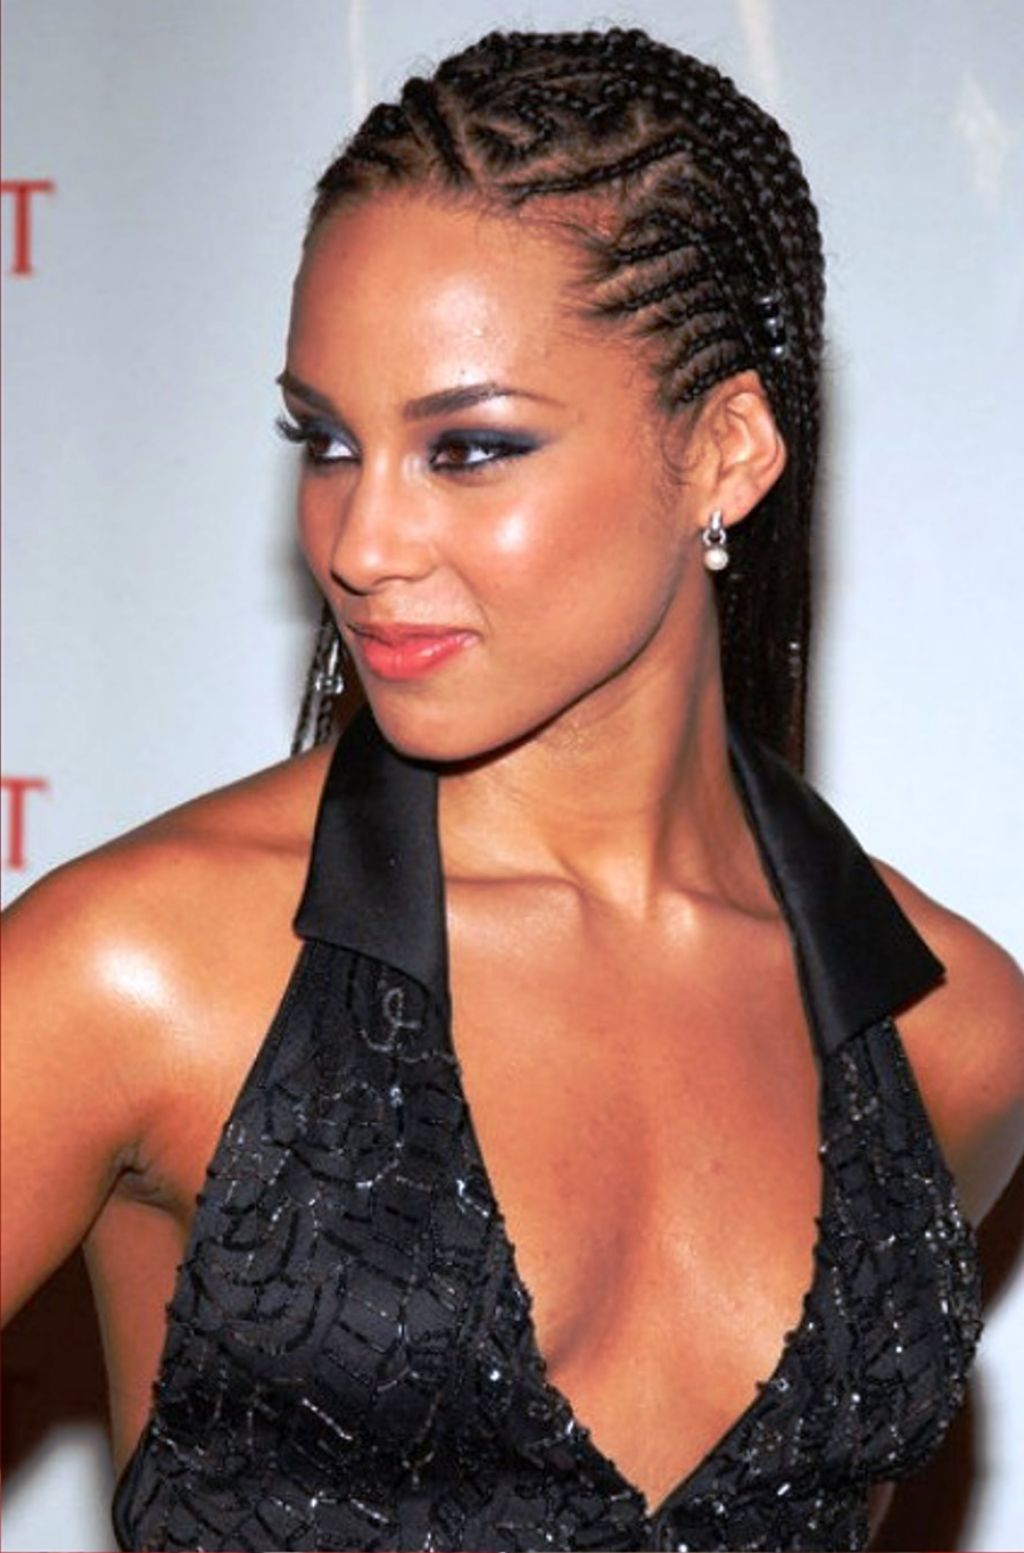 Alicia Keys Cornrow Braid Hairstyle Coiffure Afro Pinterest